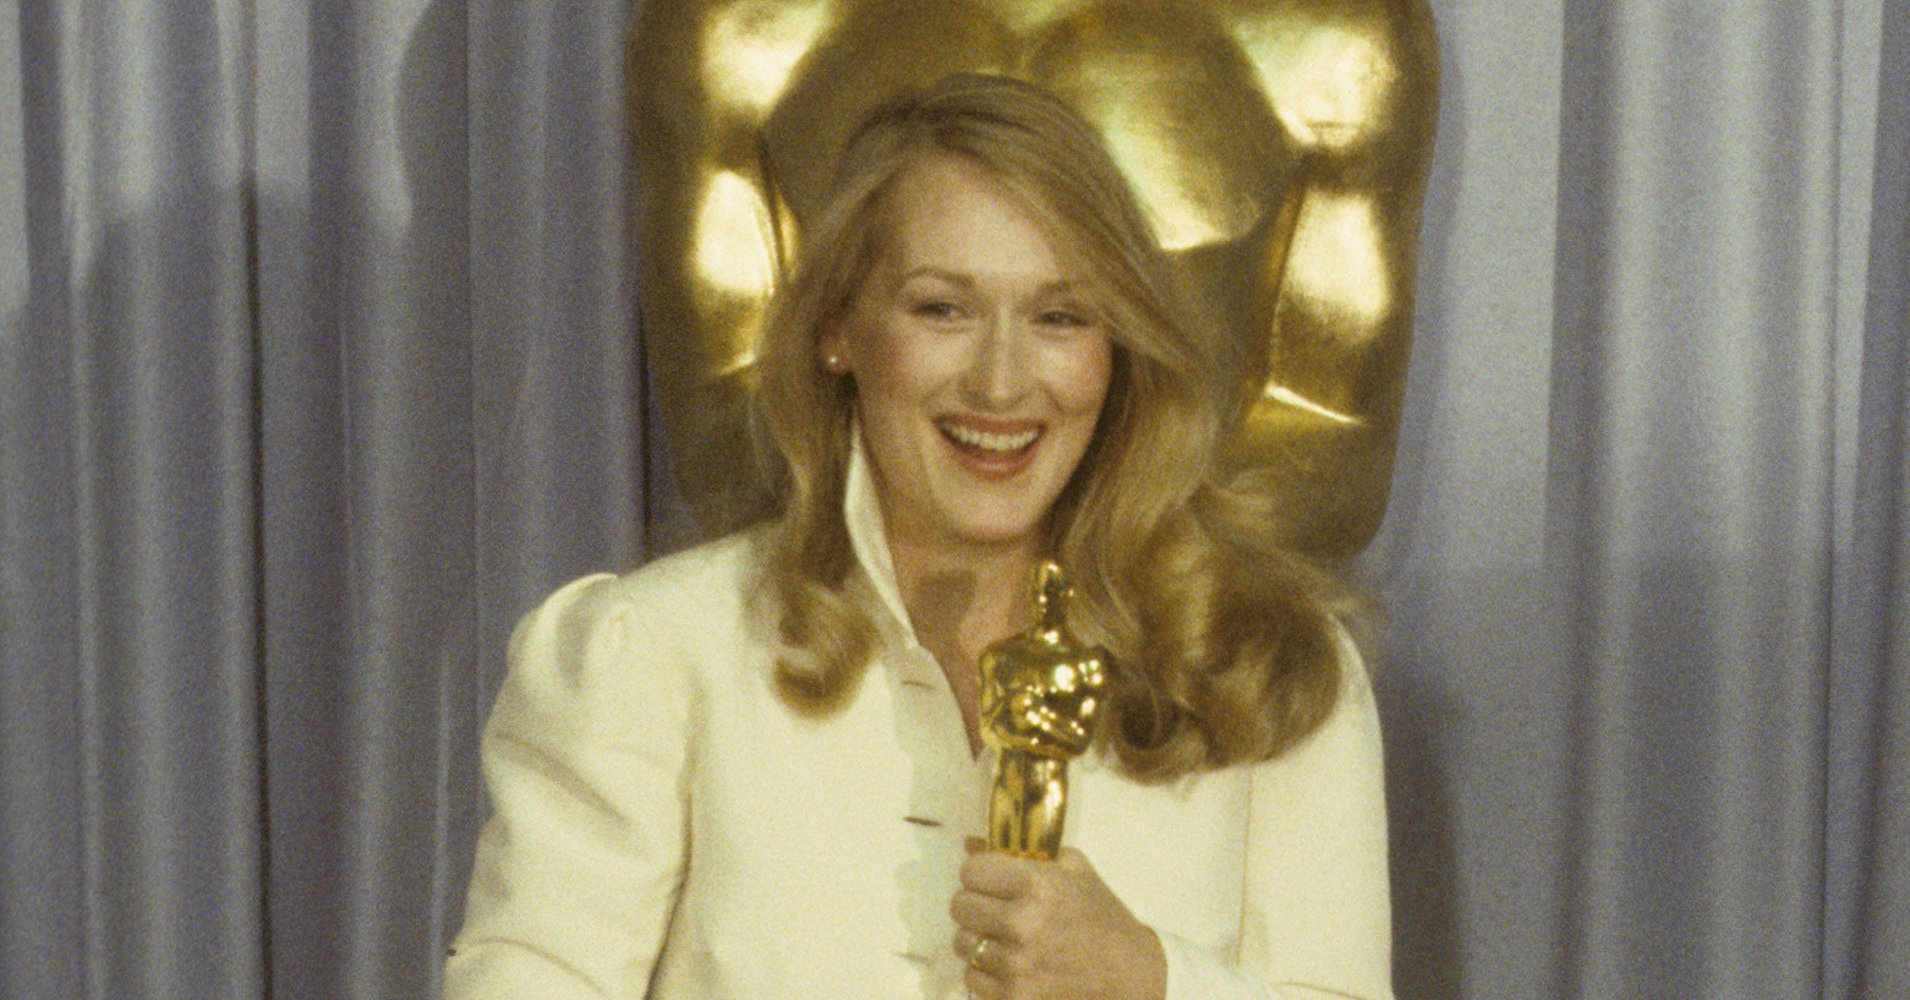 A Stunning Look At 4 Decades Worth Of Meryl Streep's Oscars Style